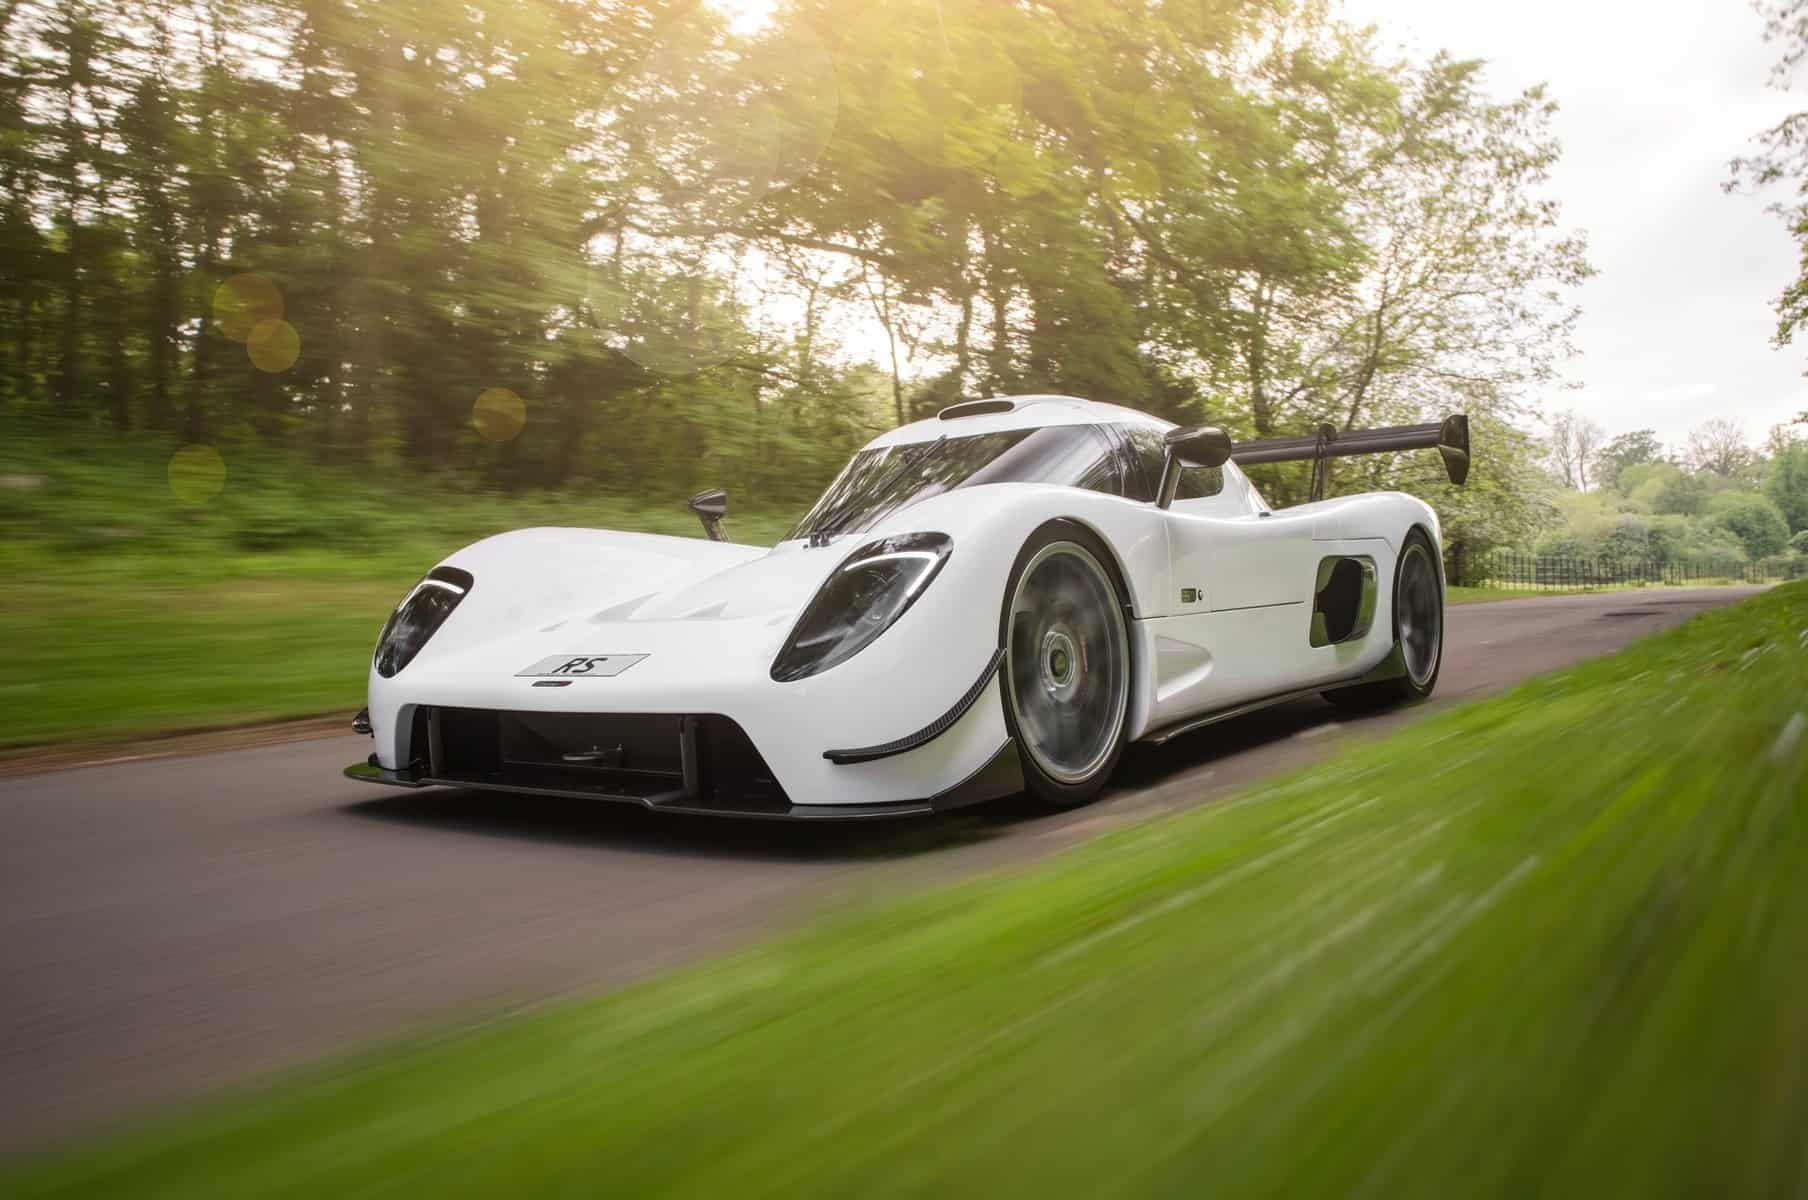 The New Ultima RS will be the Star of the Goodwood Festival of Speed 2019